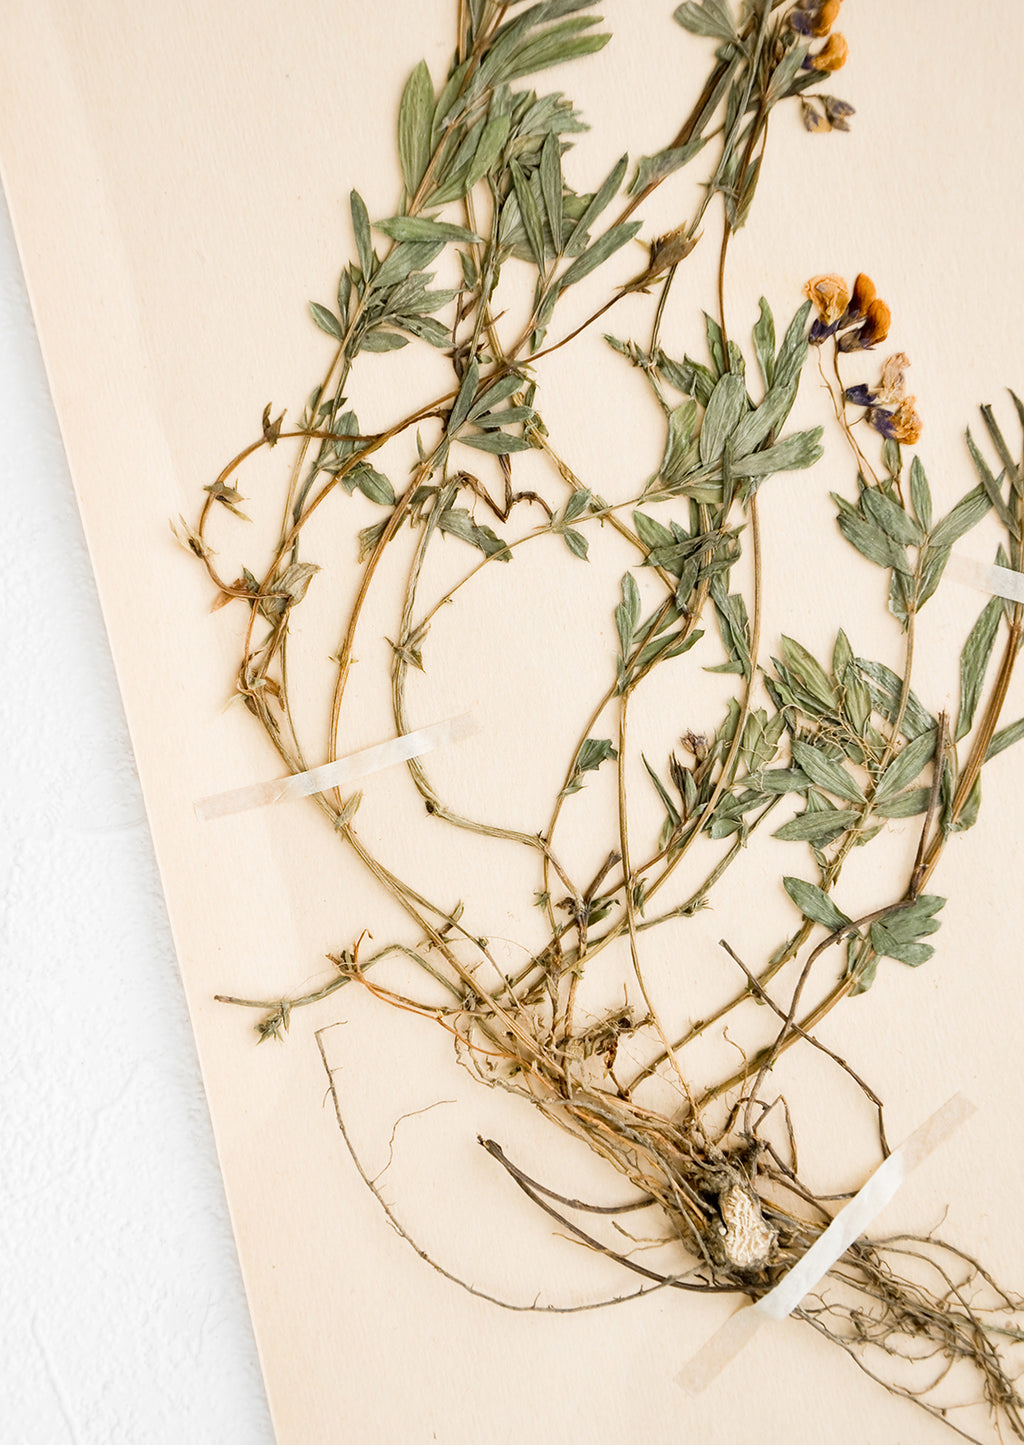 2: Dried tuberose floral specimen taped to paper